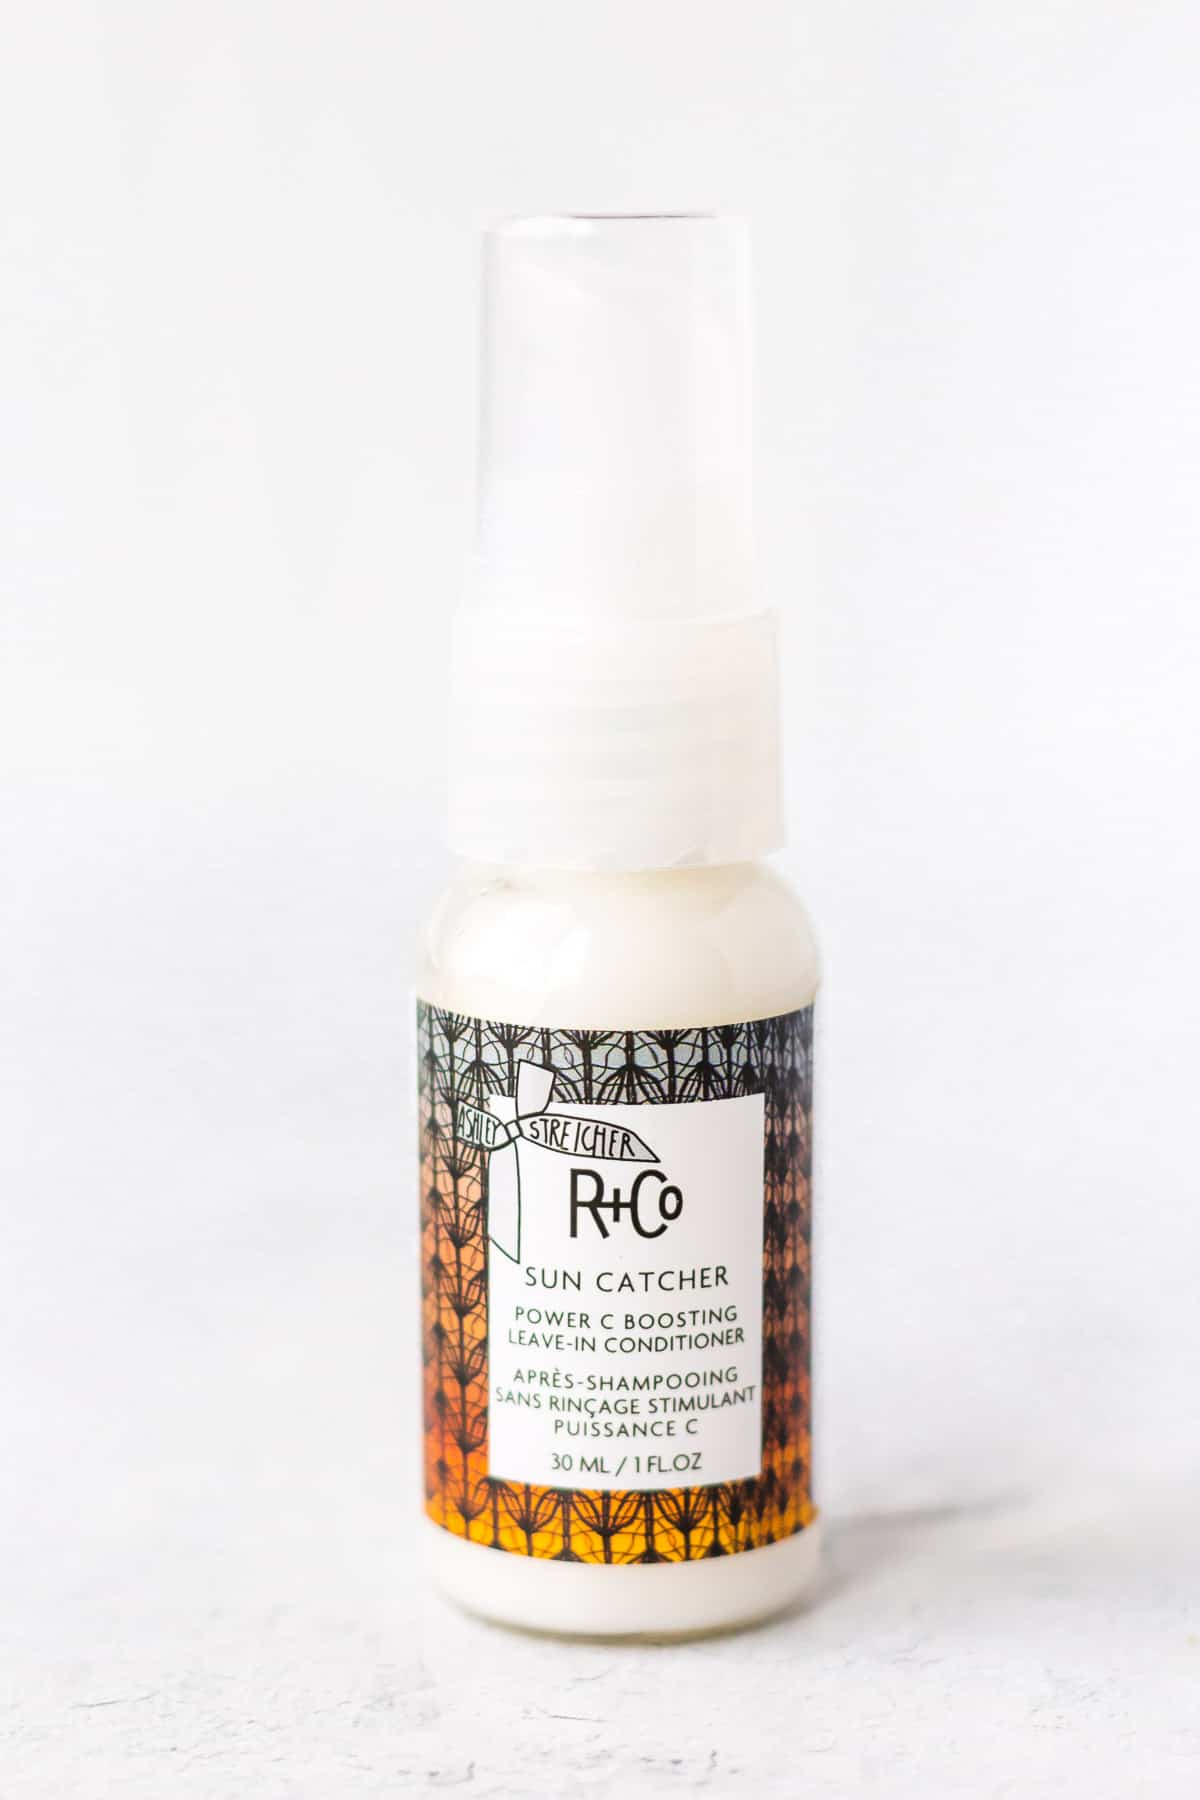 R + Co Sun Catcher Power-C Boosting Leave-in Conditioner sample